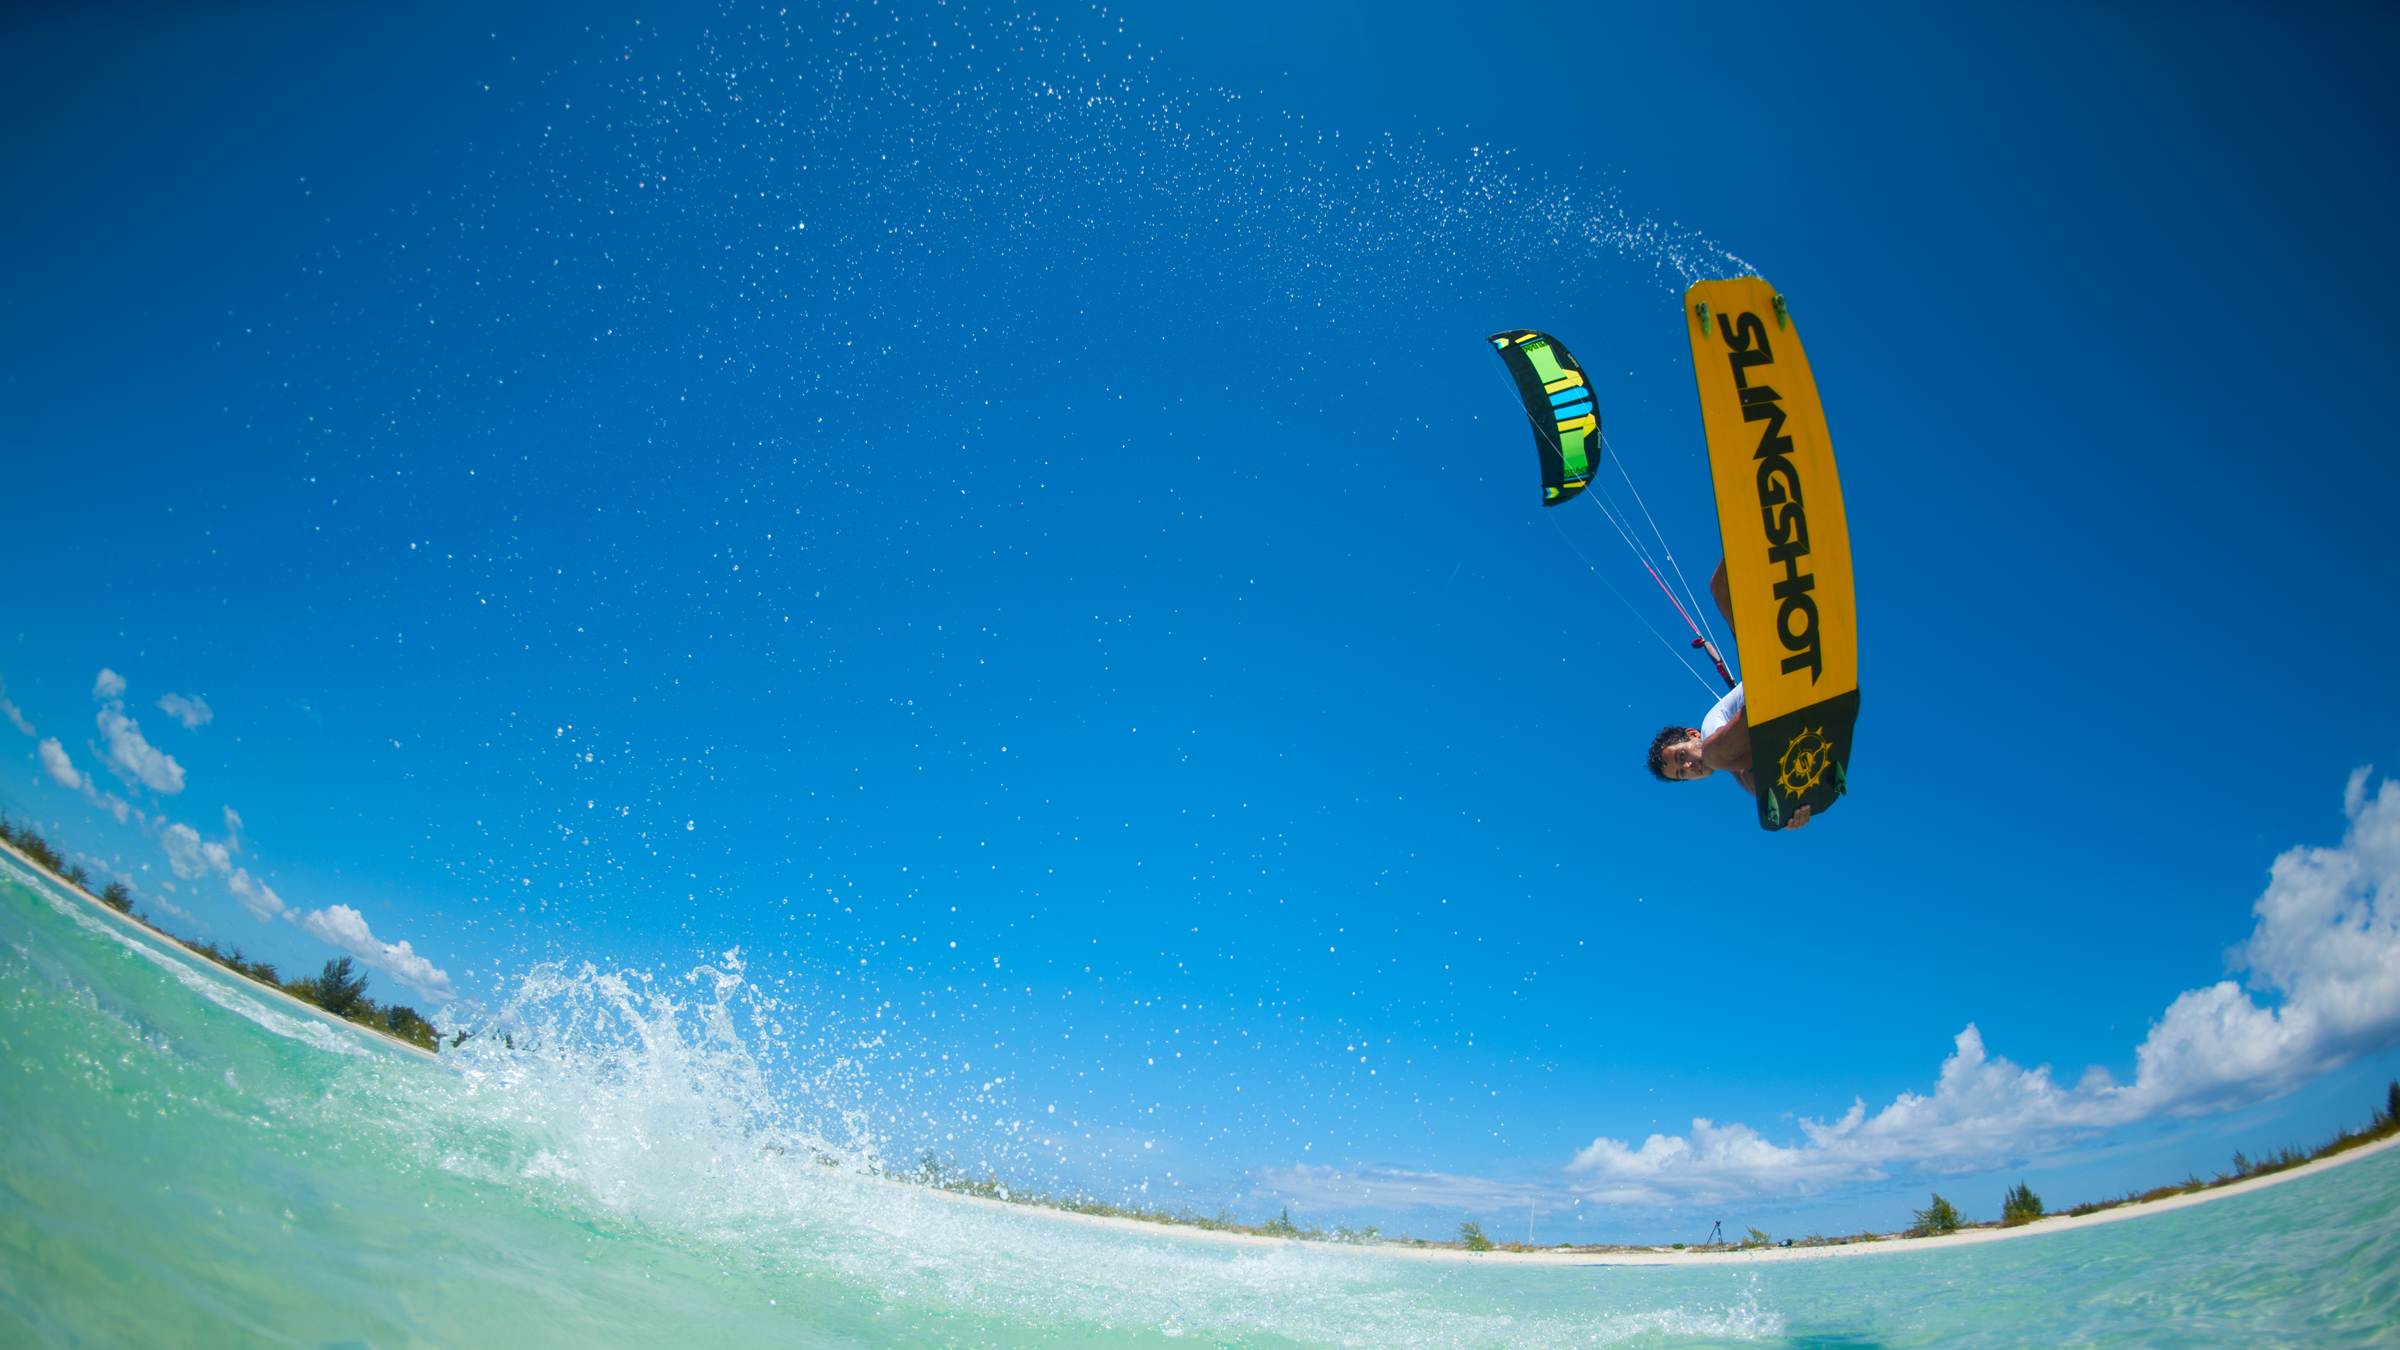 kitesurf wallpaper image - Kiteboarder Victor Hays with a jump and tail grab on the 2016 Slingshot Rally kite and Misfit kiteboard. - in resolution: High Definition - HD 16:9 2400 X 1350